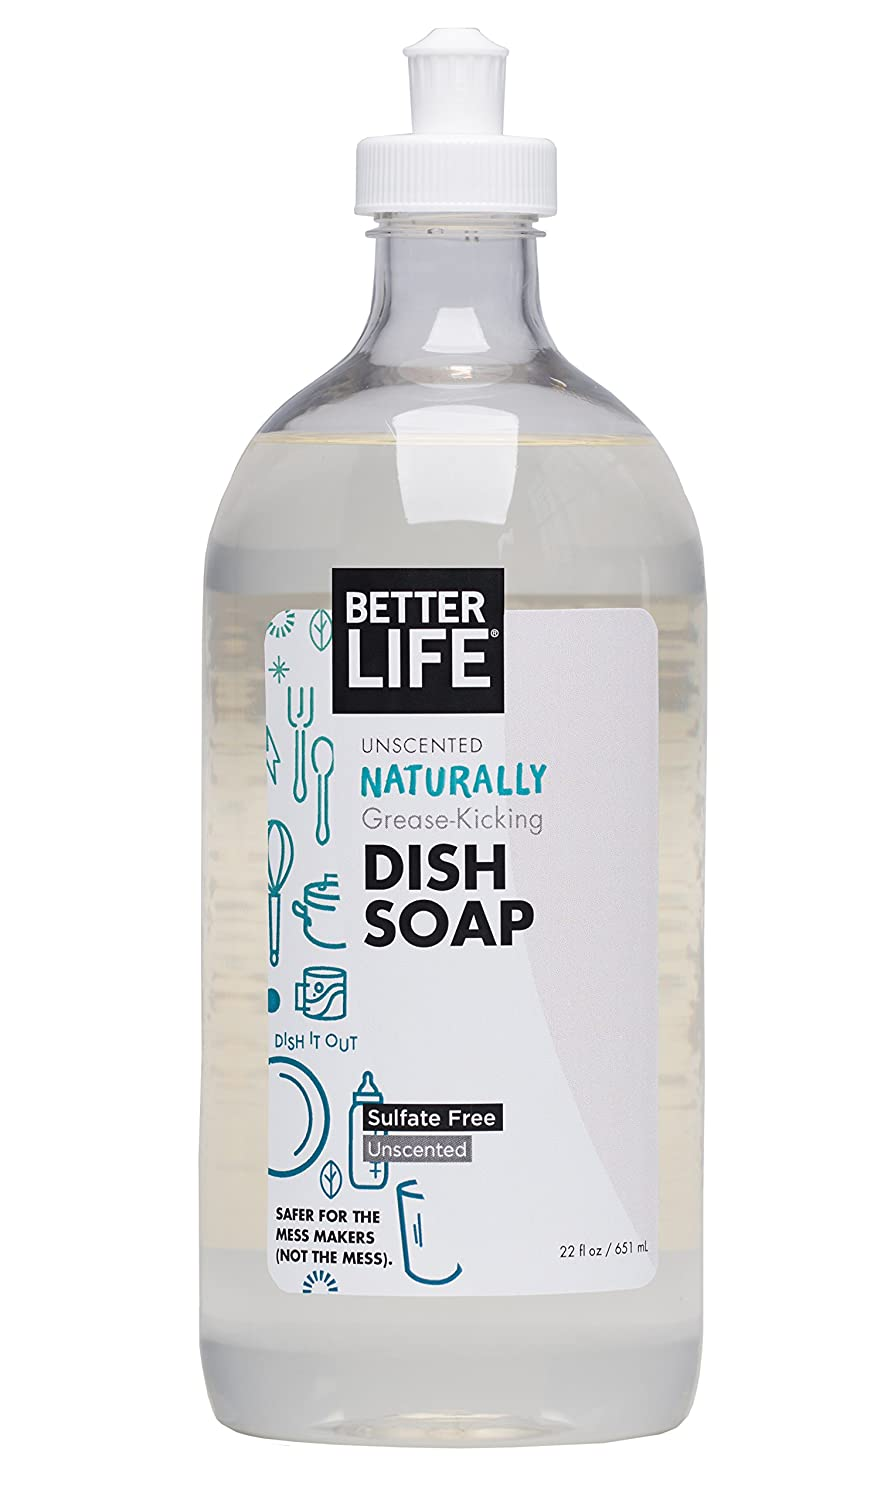 Better Life Sulfate Free Dish Soap, Tough on Grease & Gentle on Hands, Unscented, 22 Ounces, 2406H